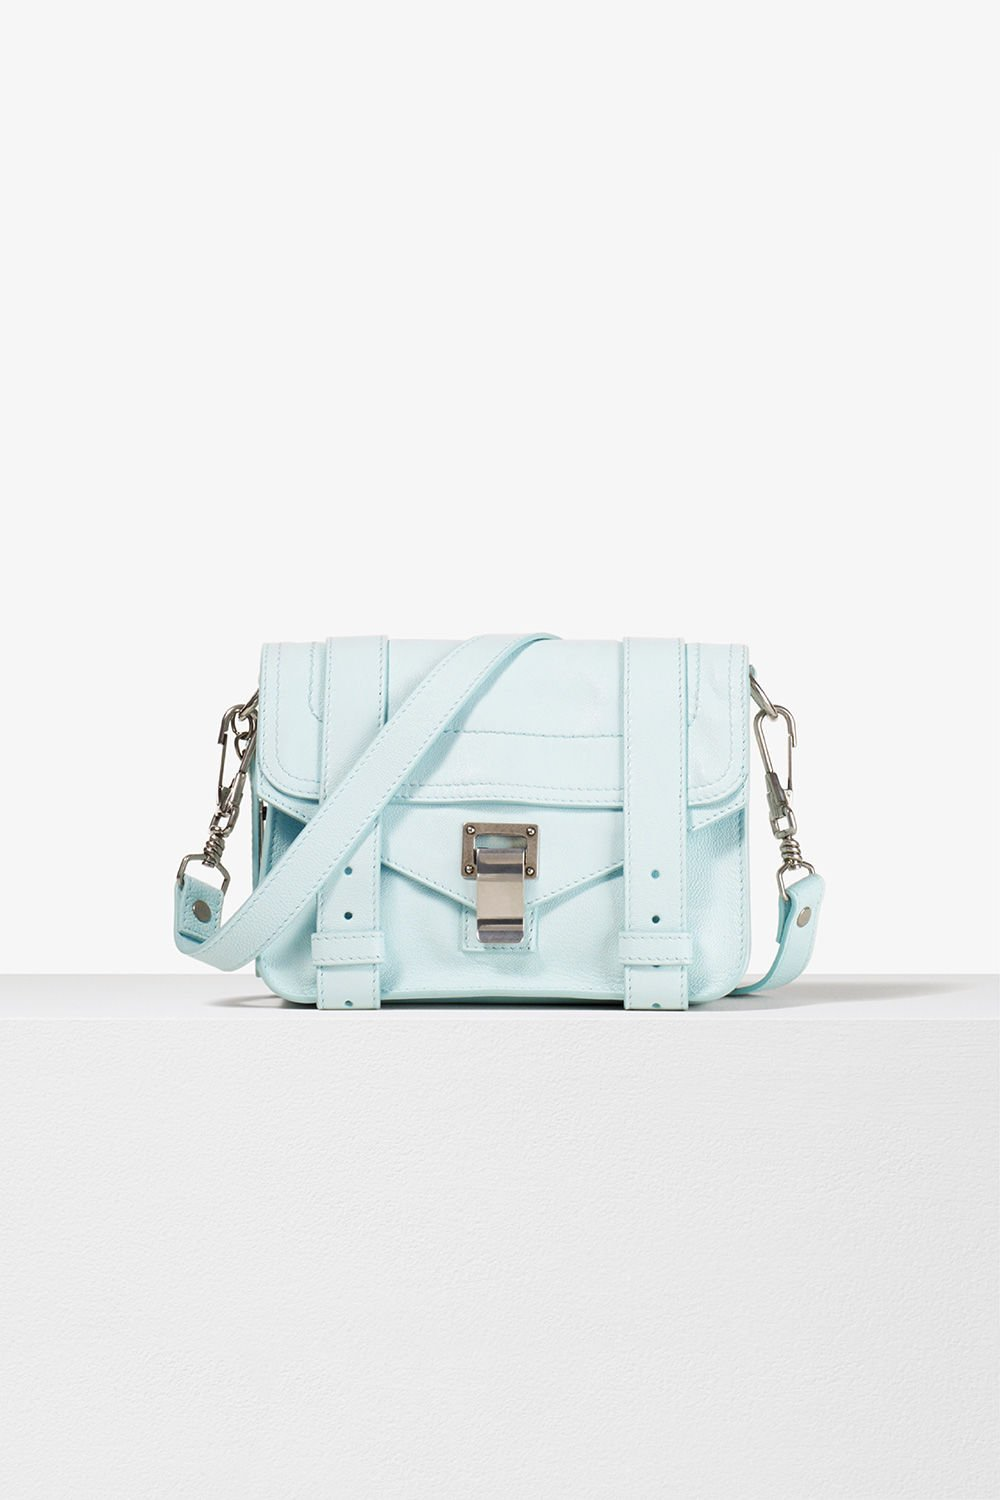 proenza schouler spring 2017 sky lux leather ps1 mini crossbody bag